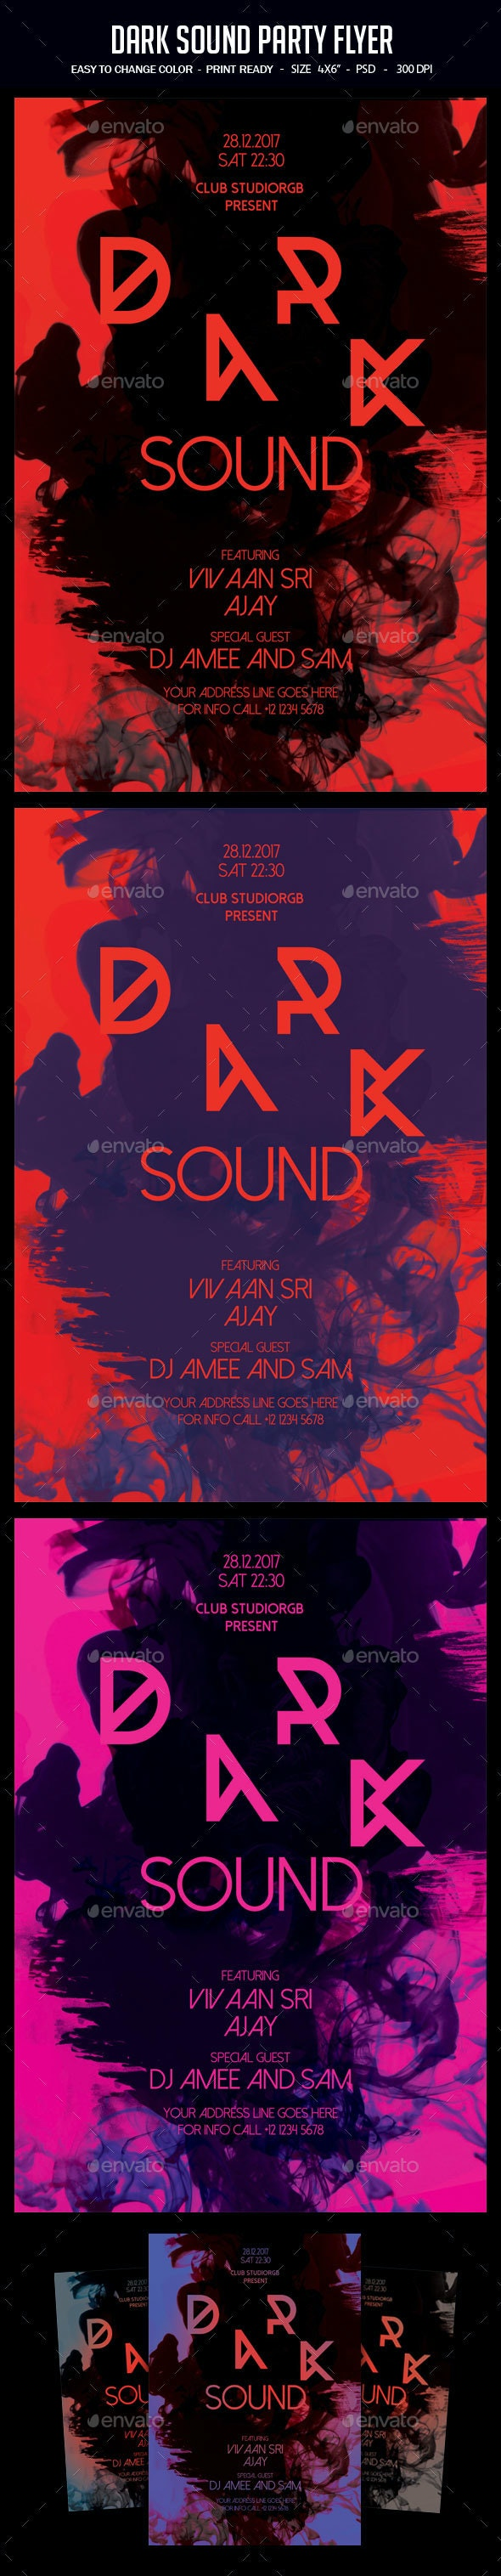 Dark Sound Party Flyer - Clubs & Parties Events